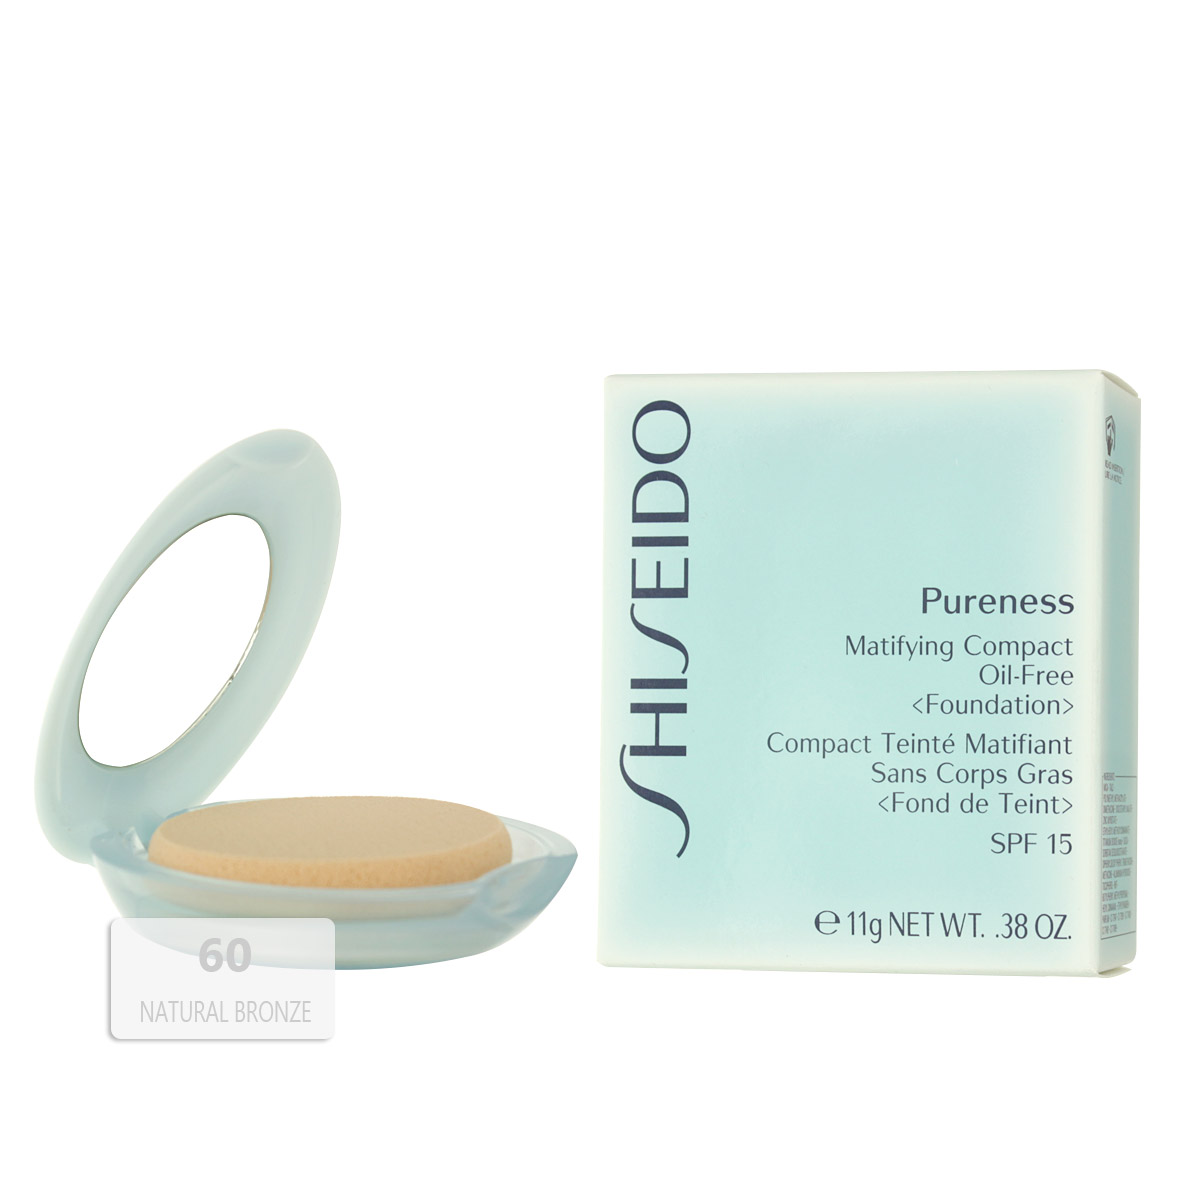 Shiseido Pureness Matifying Compact Oil-Free Foundation SPF 15 (60 Natural Bronze) 11 g